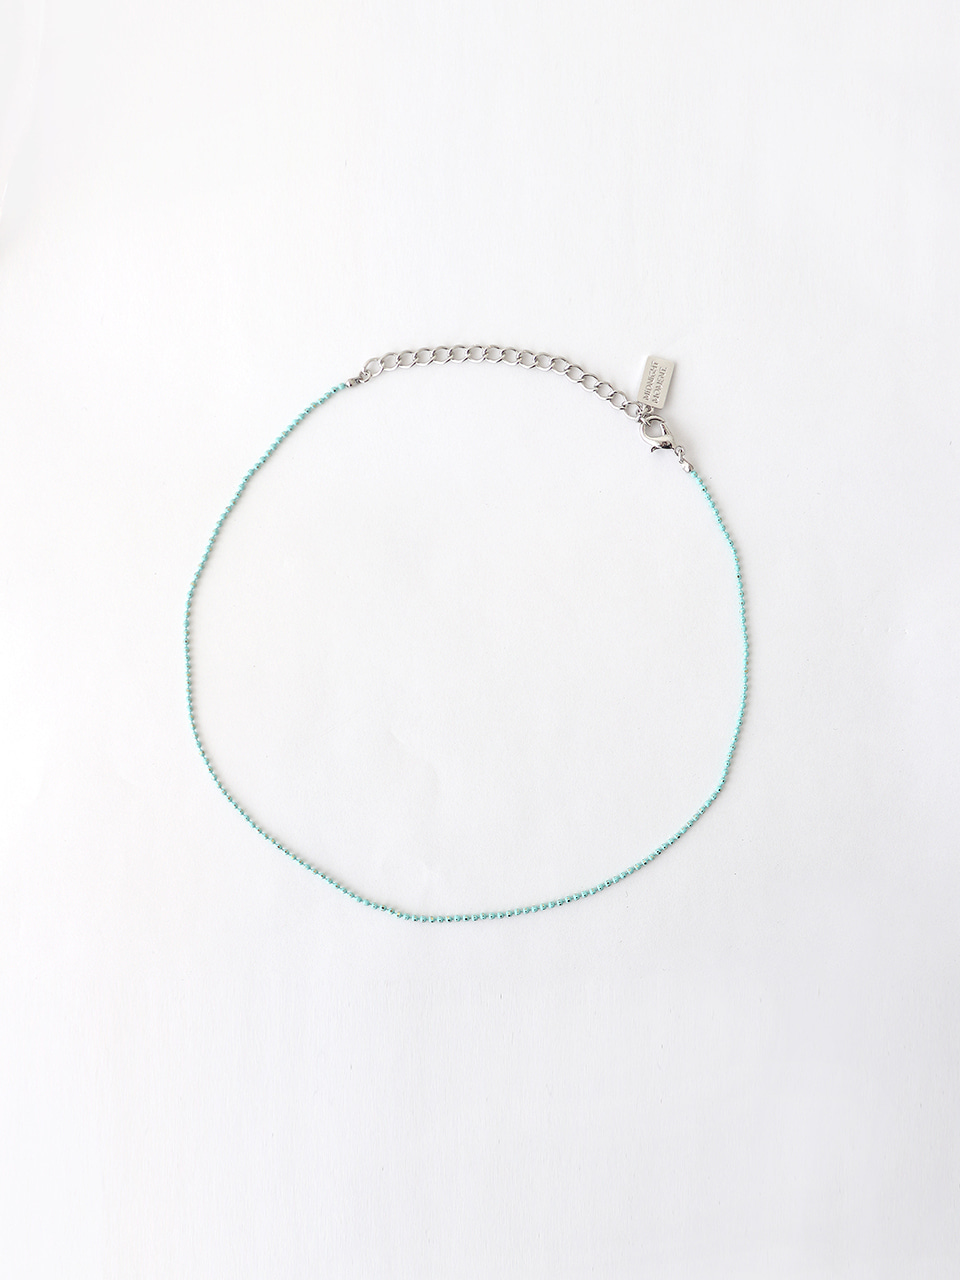 mint ball chain necklace (choker)